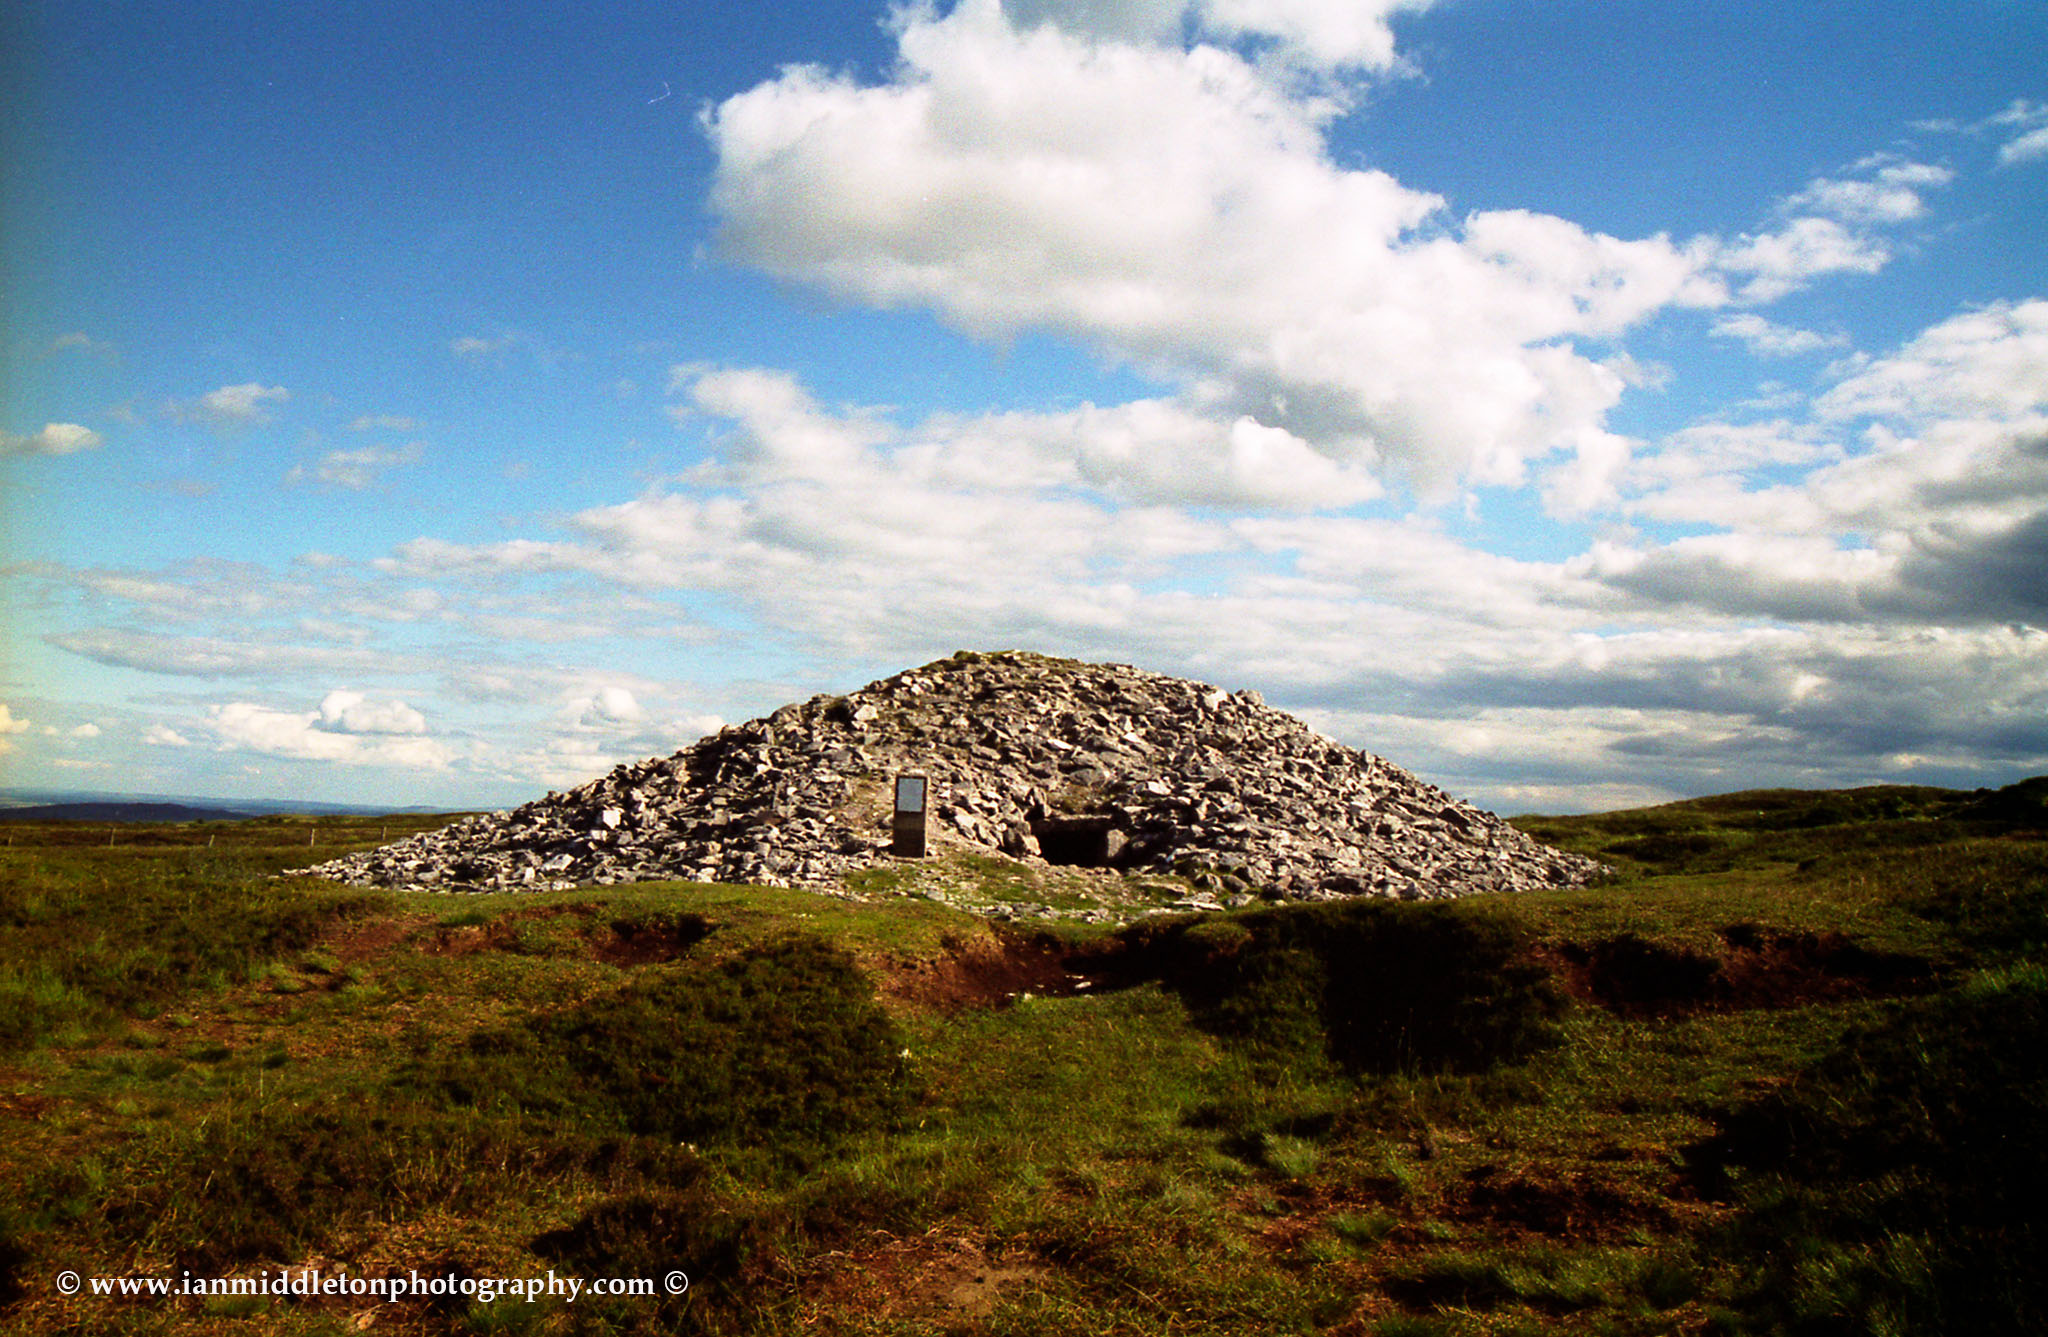 A megalithic burial cairn at Carrowkeel.